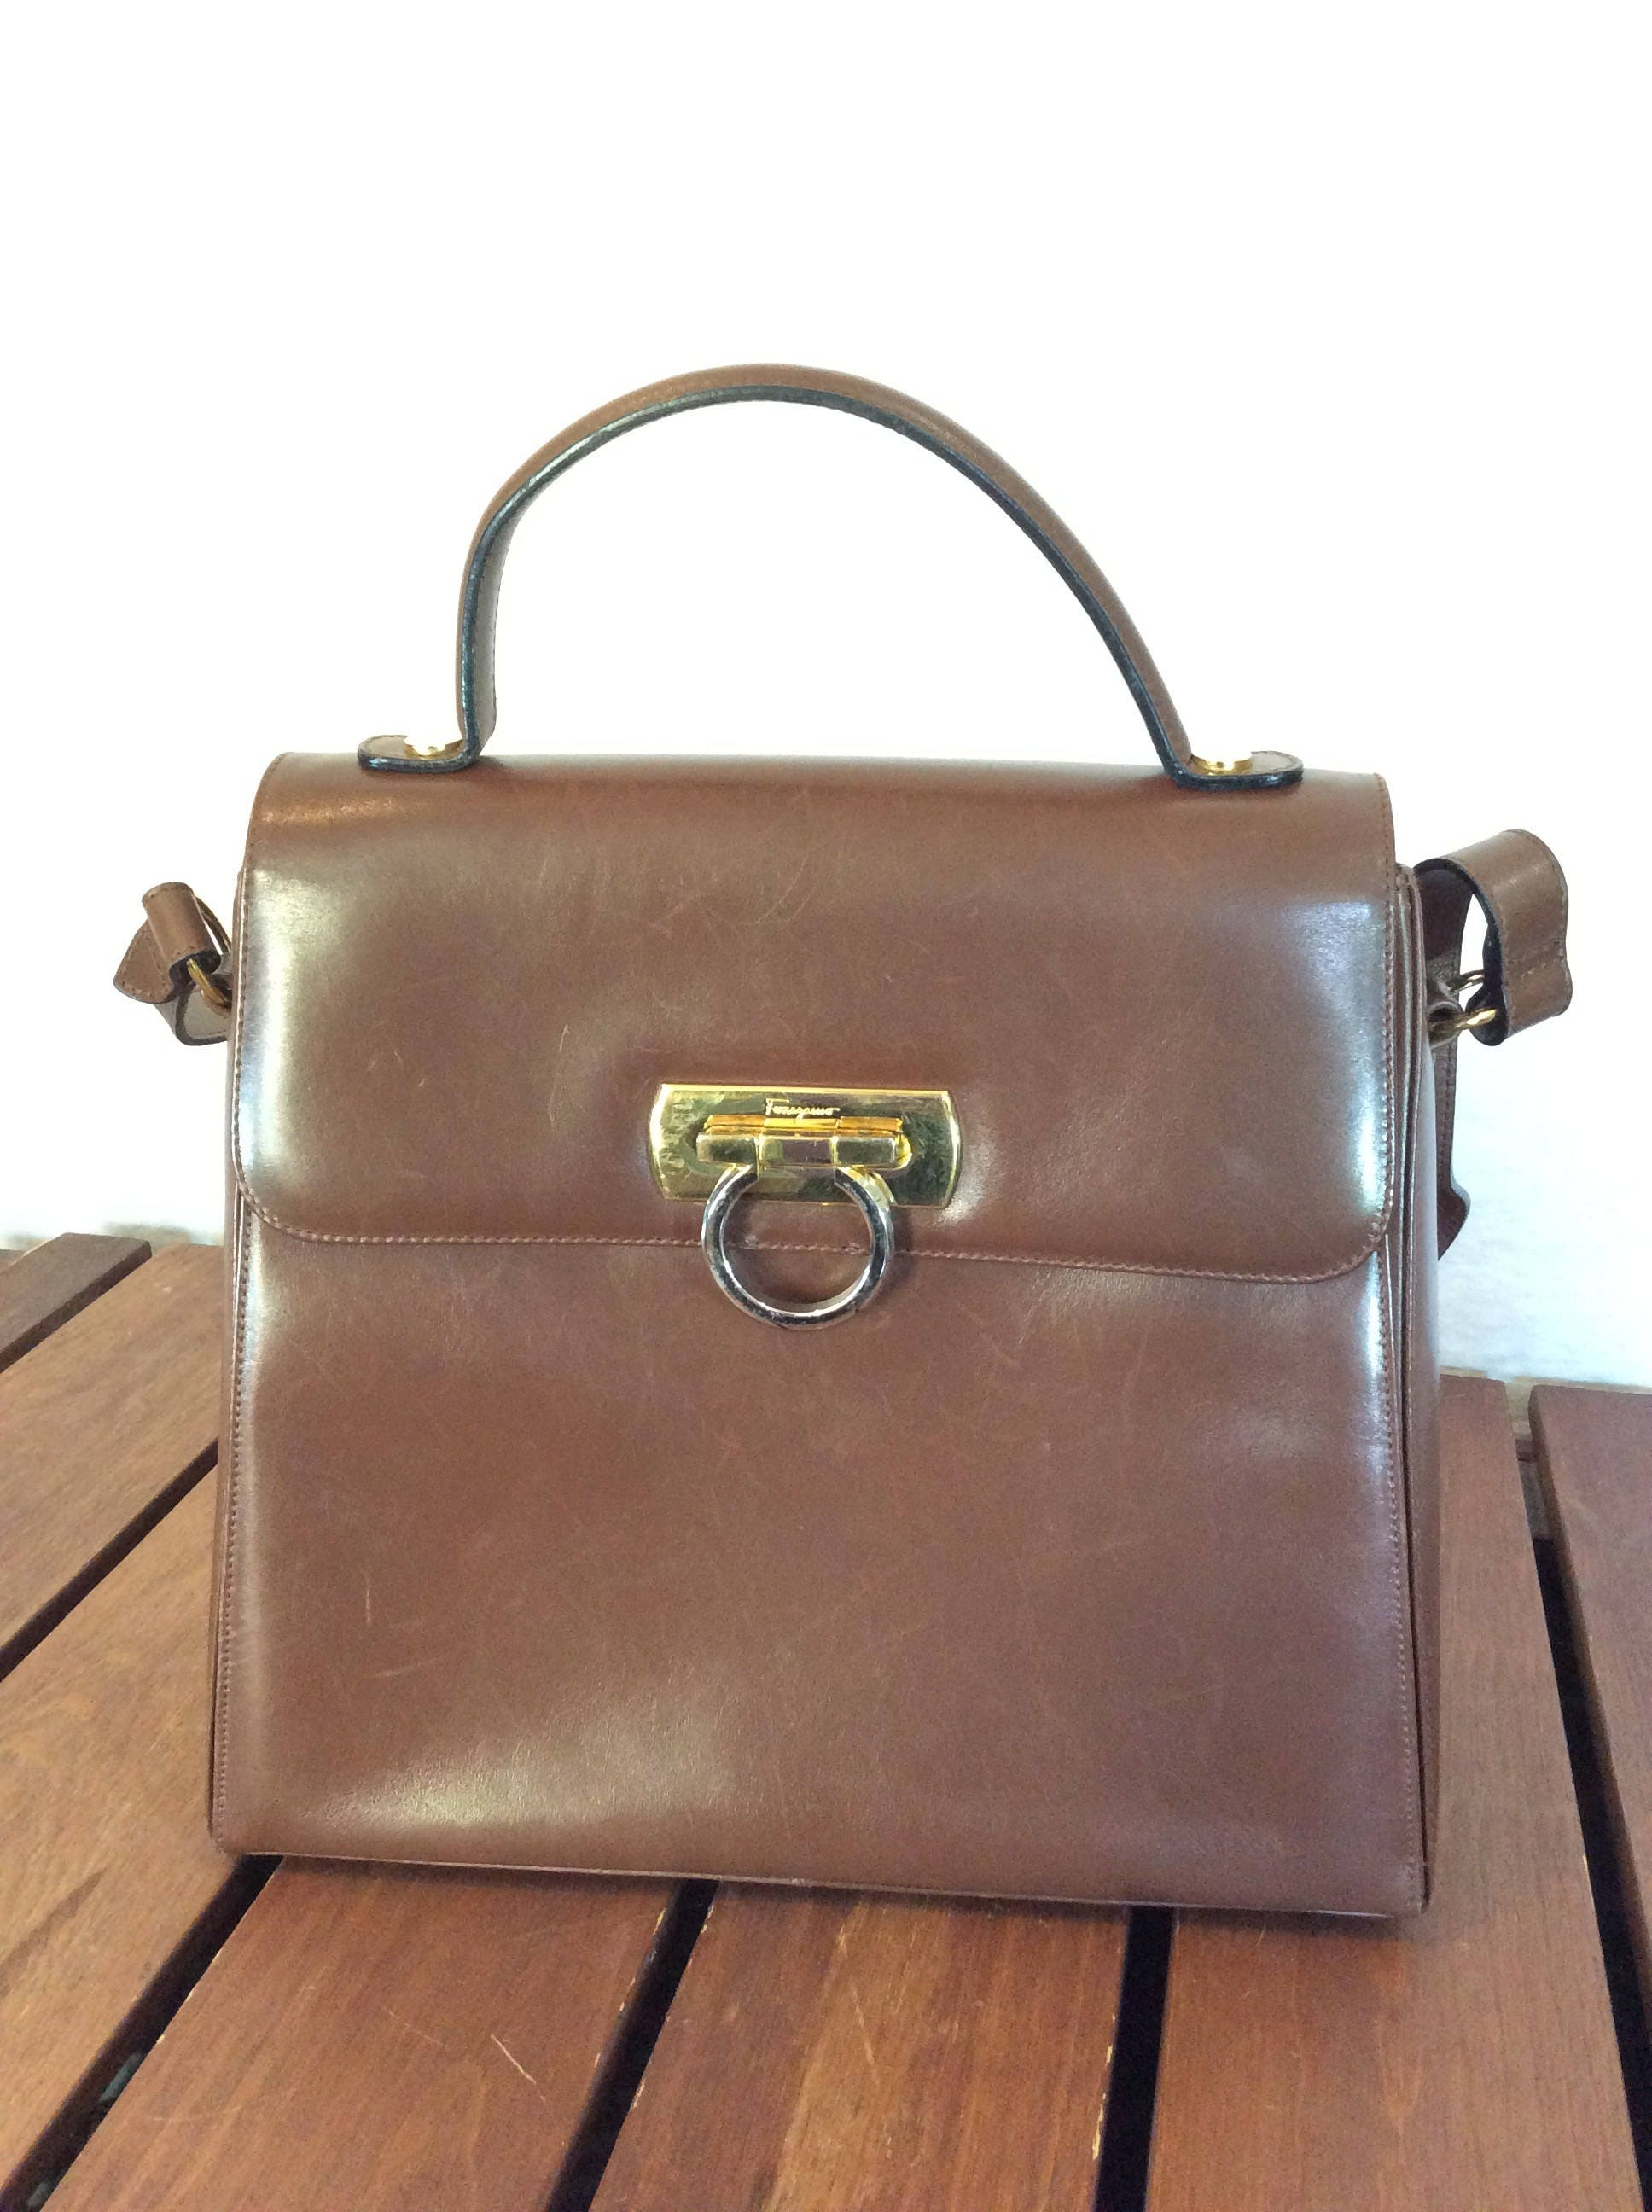 76e86f2f5b SALVATORE FERRAGAMO Gancini Brown Leather Satchel Shoulder Bag Made in Italy